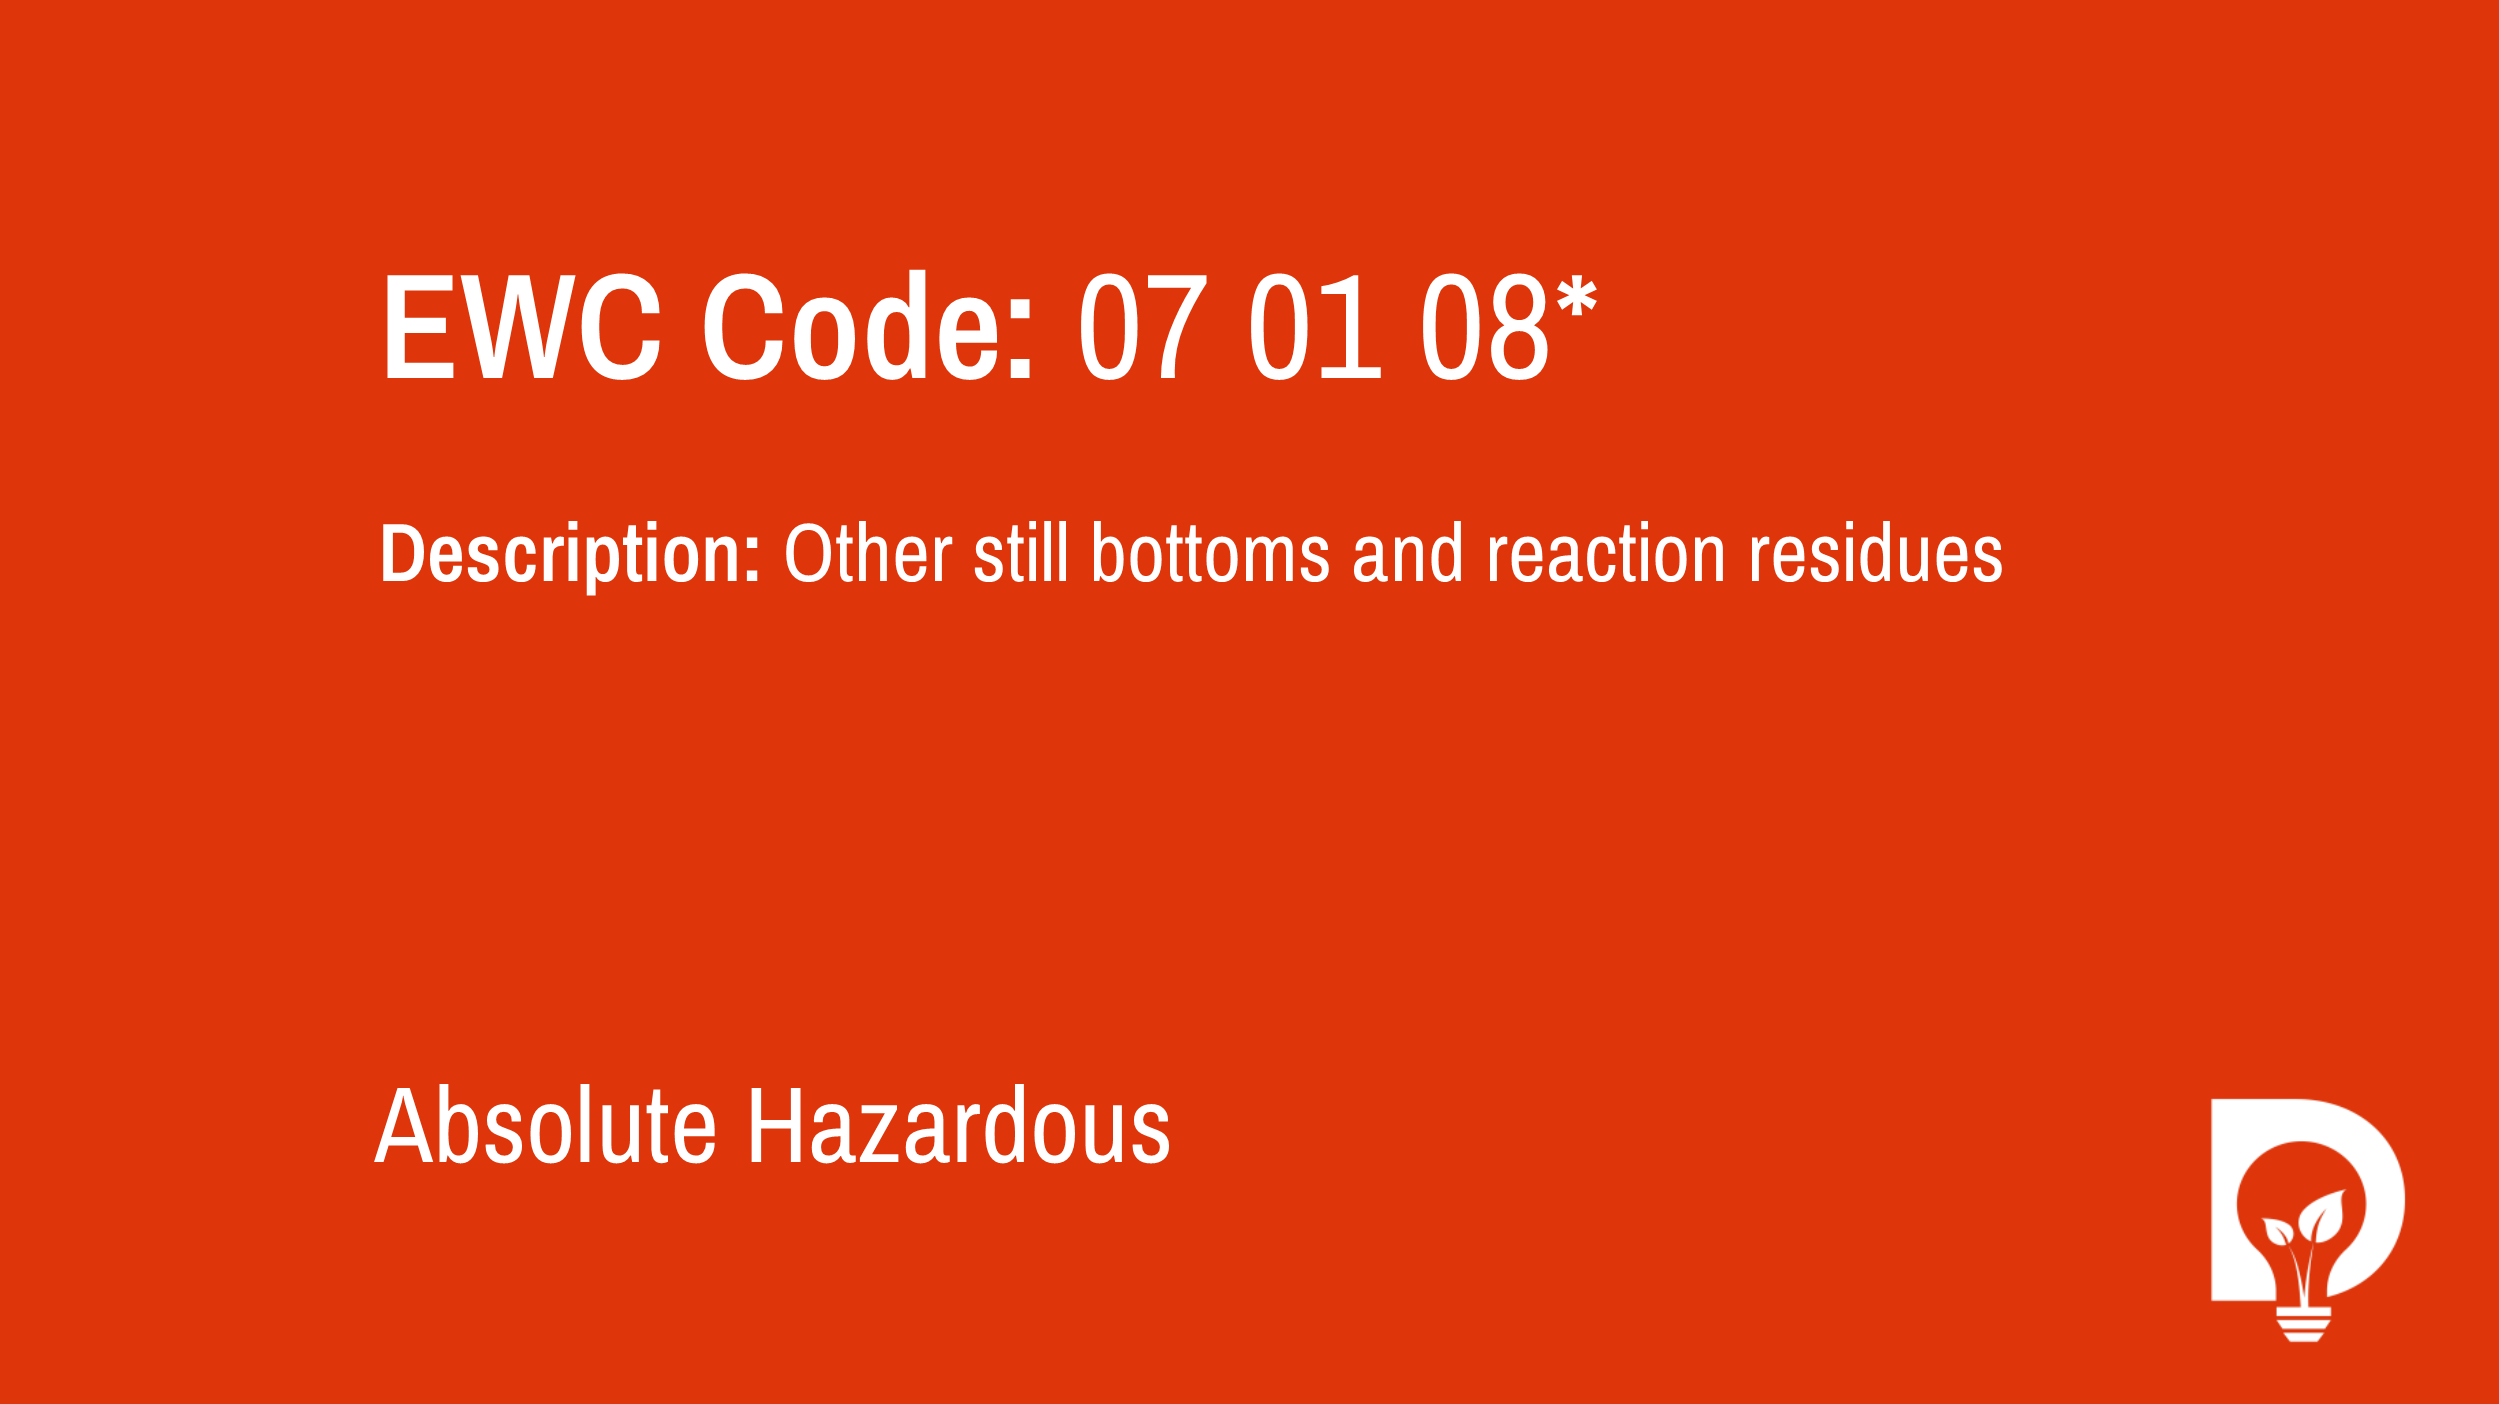 EWC Code: 07 01 08* - other still bottoms and reaction residues. Type: Absolute Hazardous. Image by Dsposal